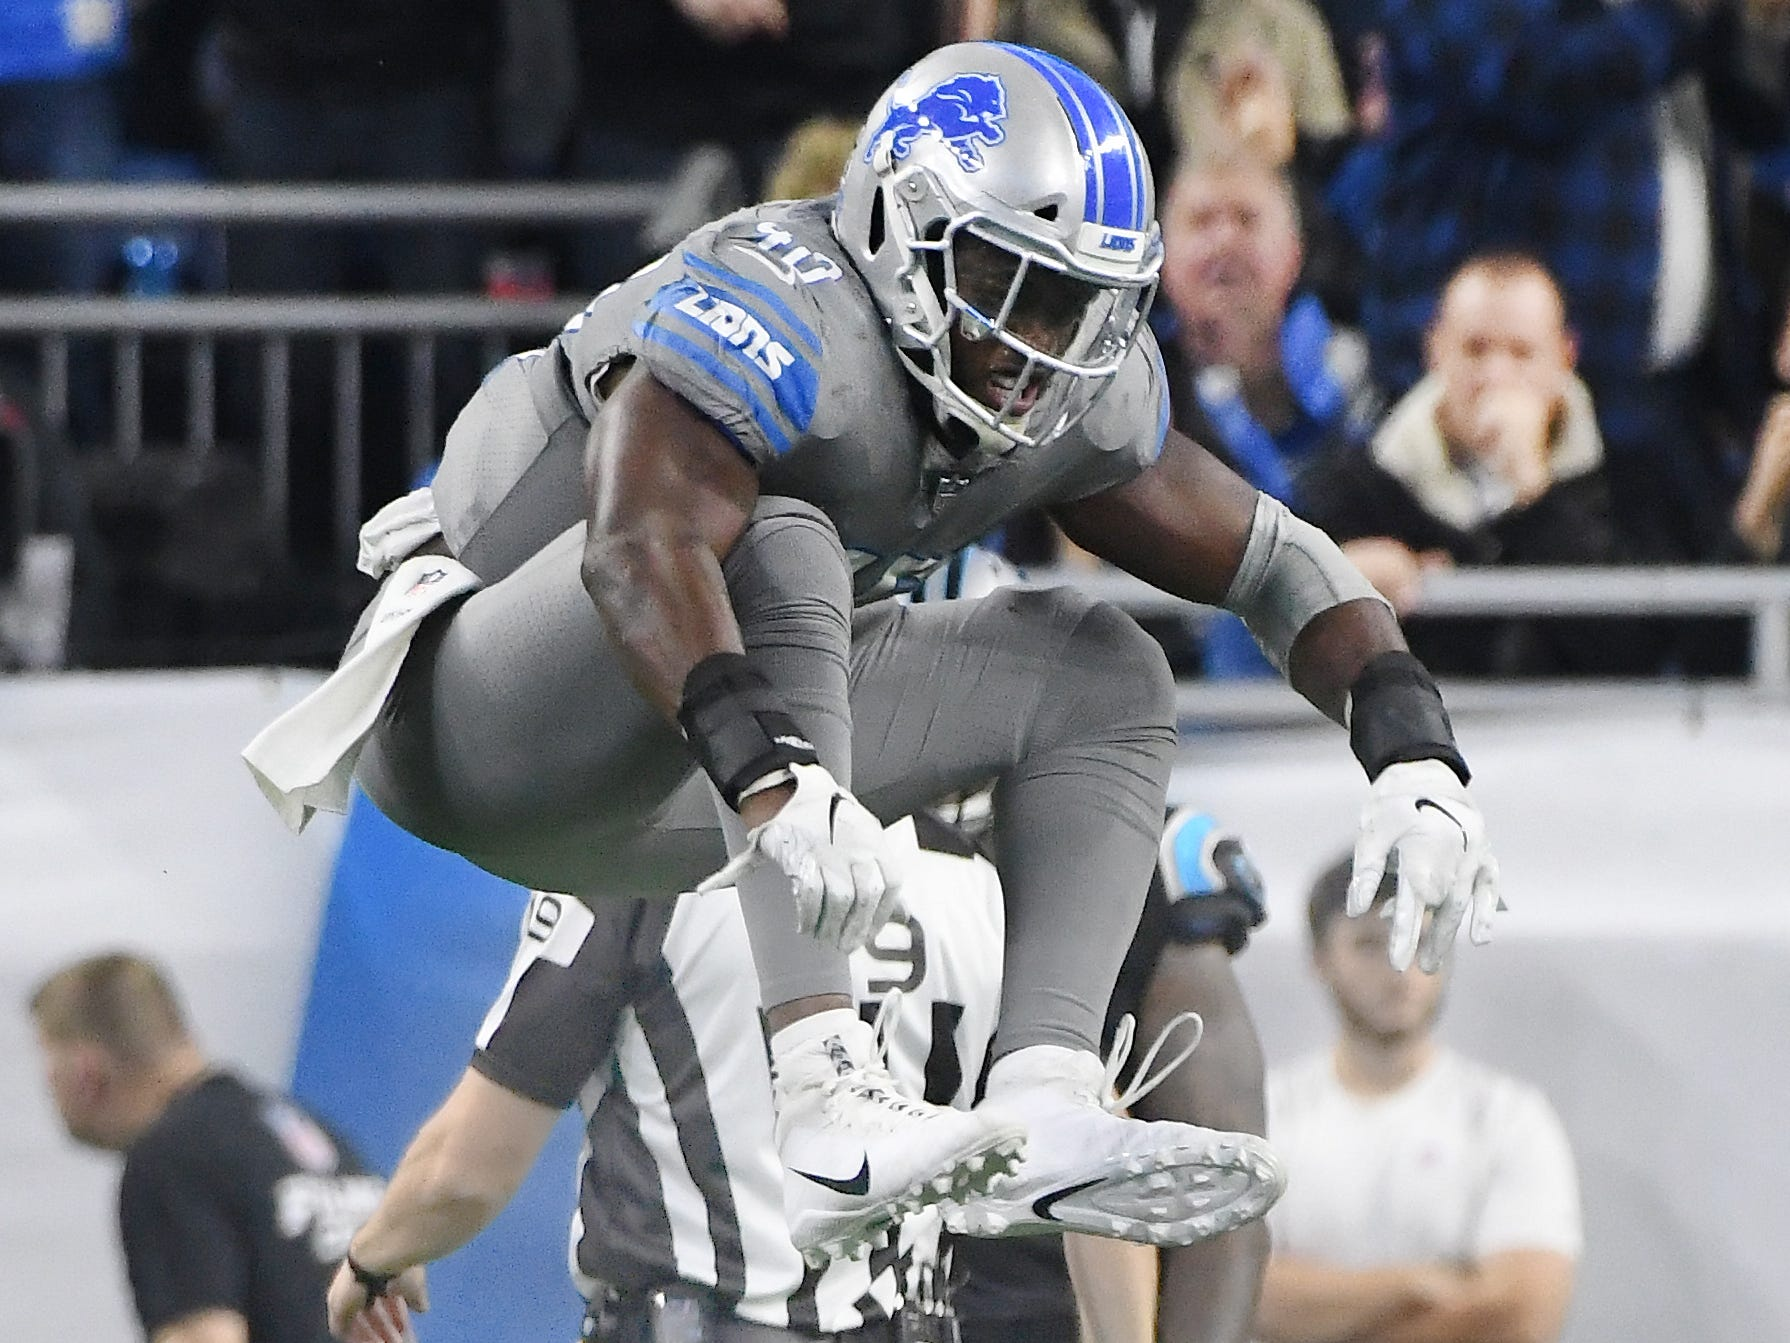 Lions linebacker Jarrad Davis celebrates a sack on Panthers quarterback Cam Newton in the third quarter.